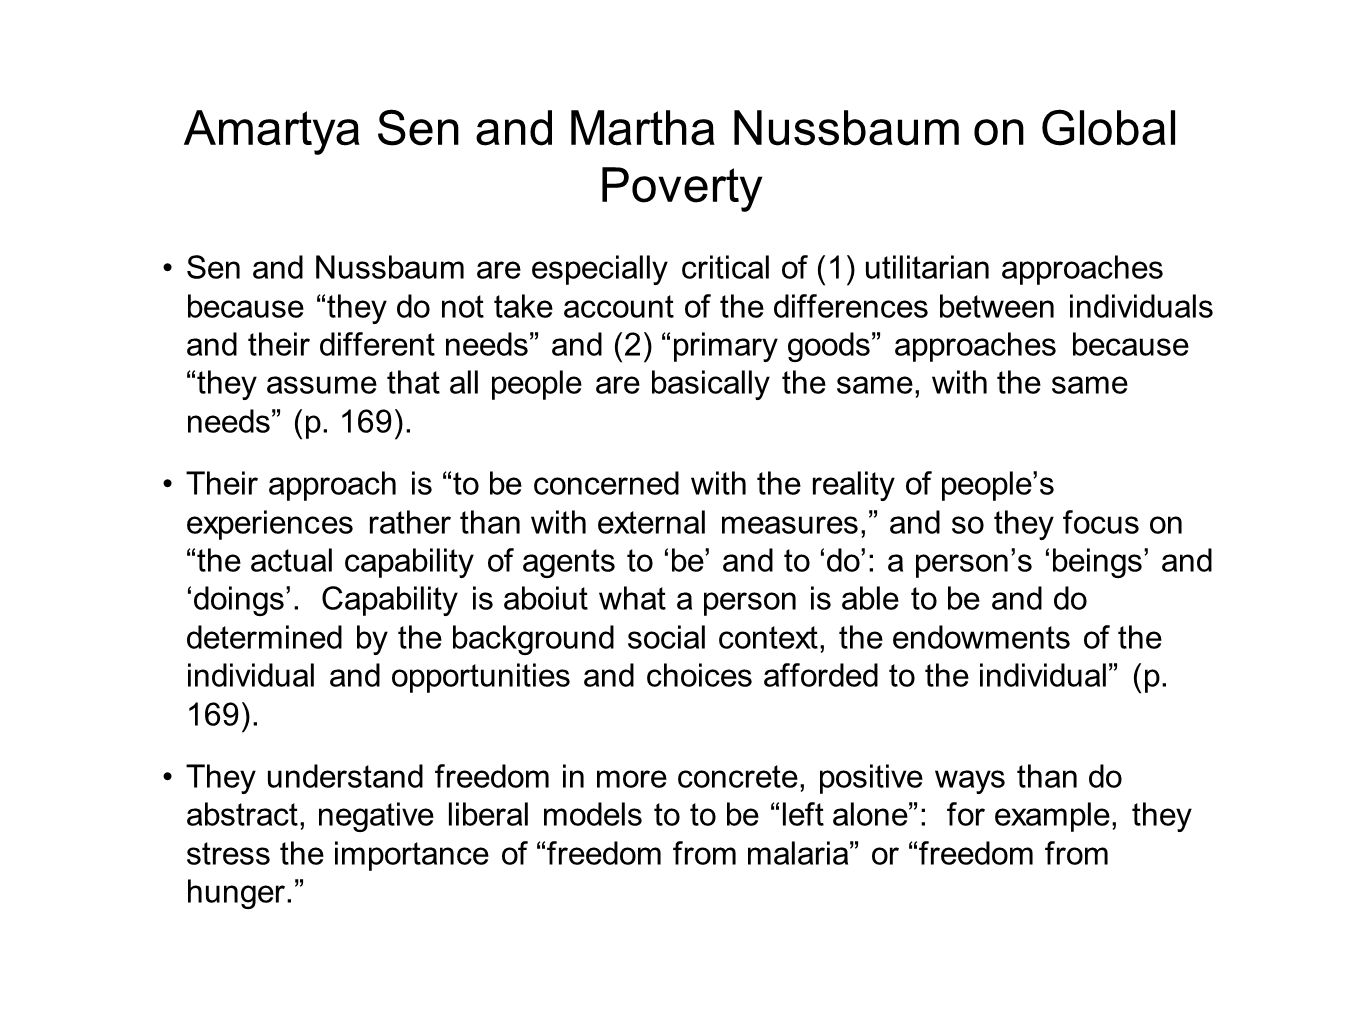 Amartya Sen and Martha Nussbaum on Global Poverty